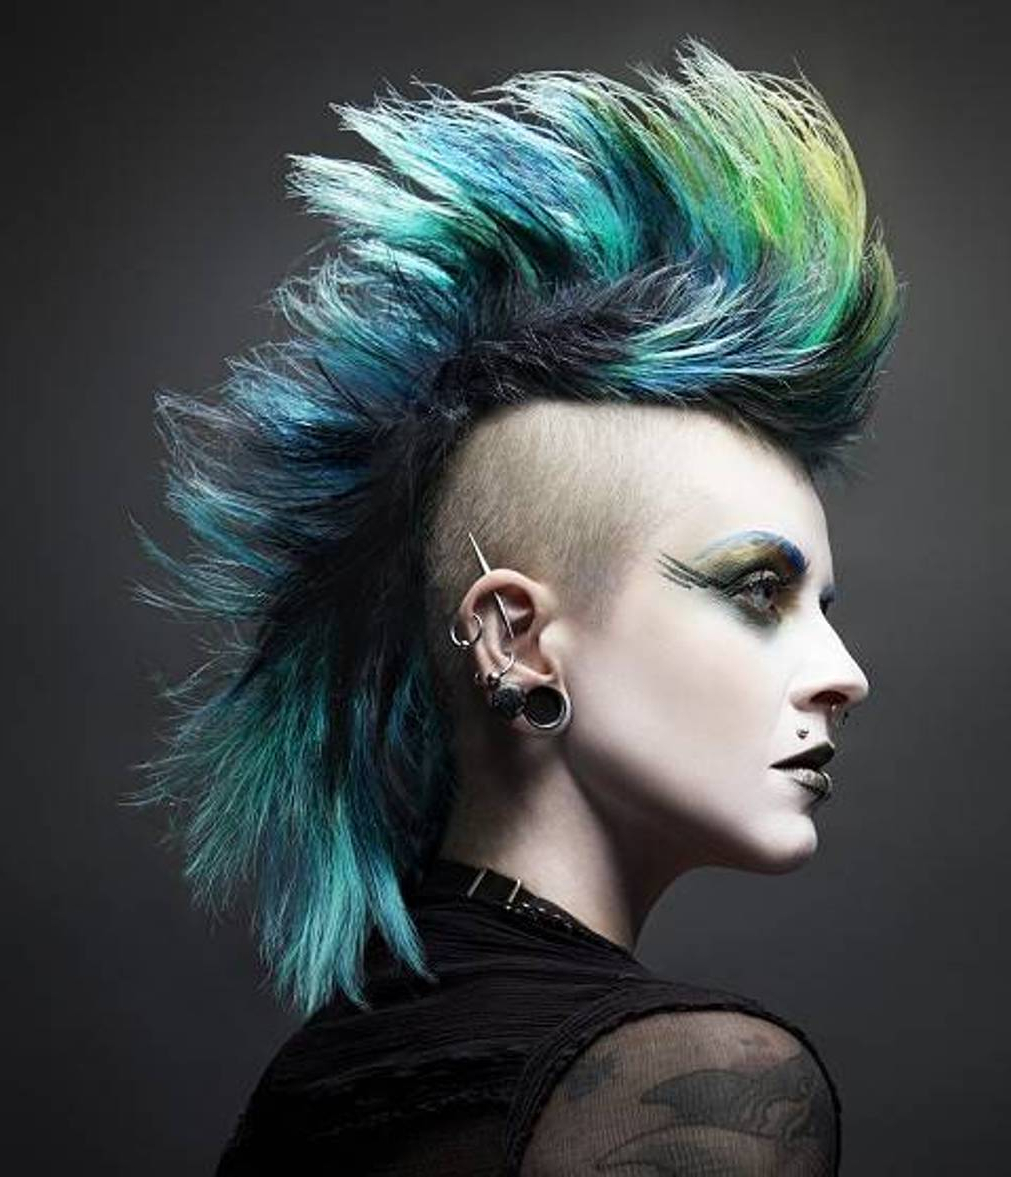 Fashionable Hot Red Mohawk Hairstyles Intended For Punk Hiarstyles For Women (View 7 of 20)